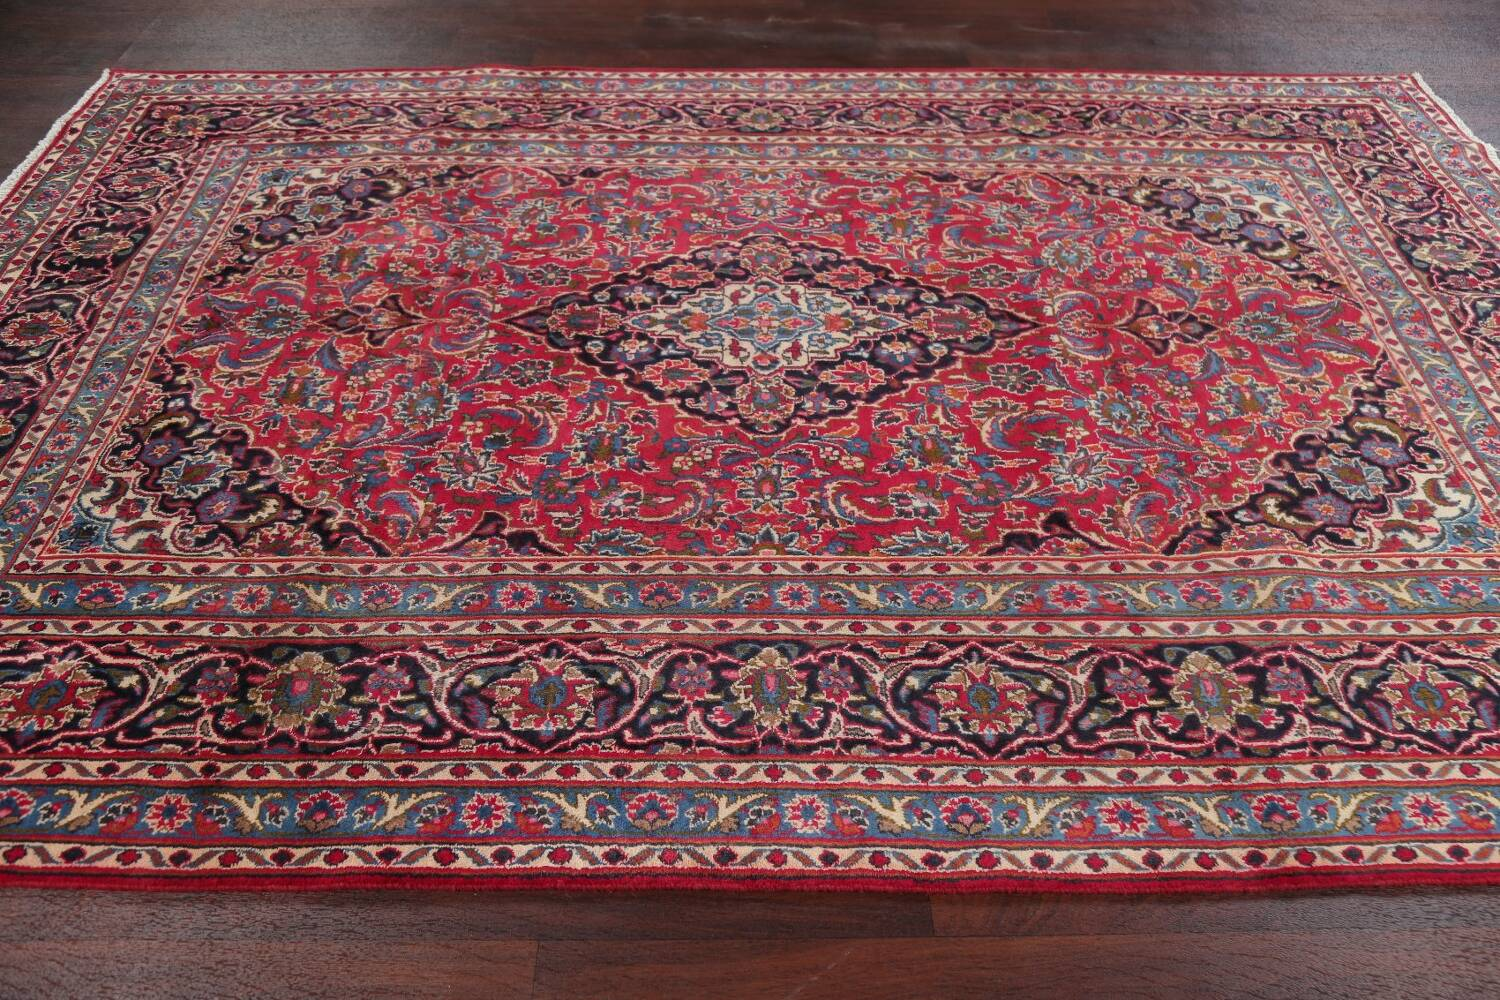 Floral Red Mashad Persian Area Rug 6x10 image 15